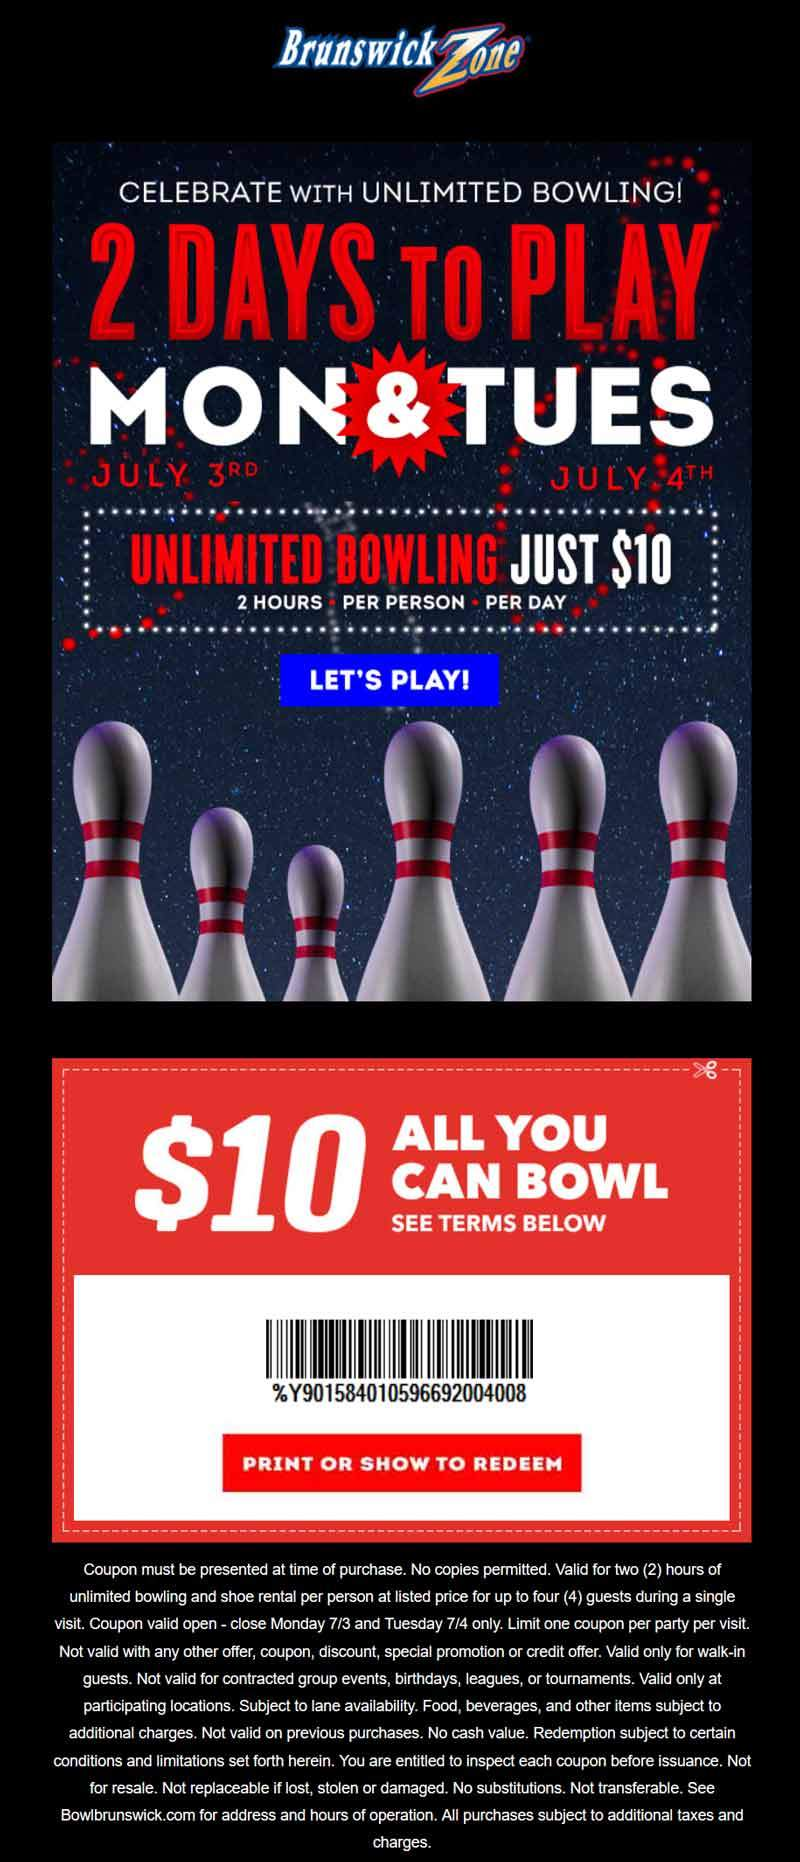 brunswick coupons 10 unlimited bowling today at brunswick. Black Bedroom Furniture Sets. Home Design Ideas